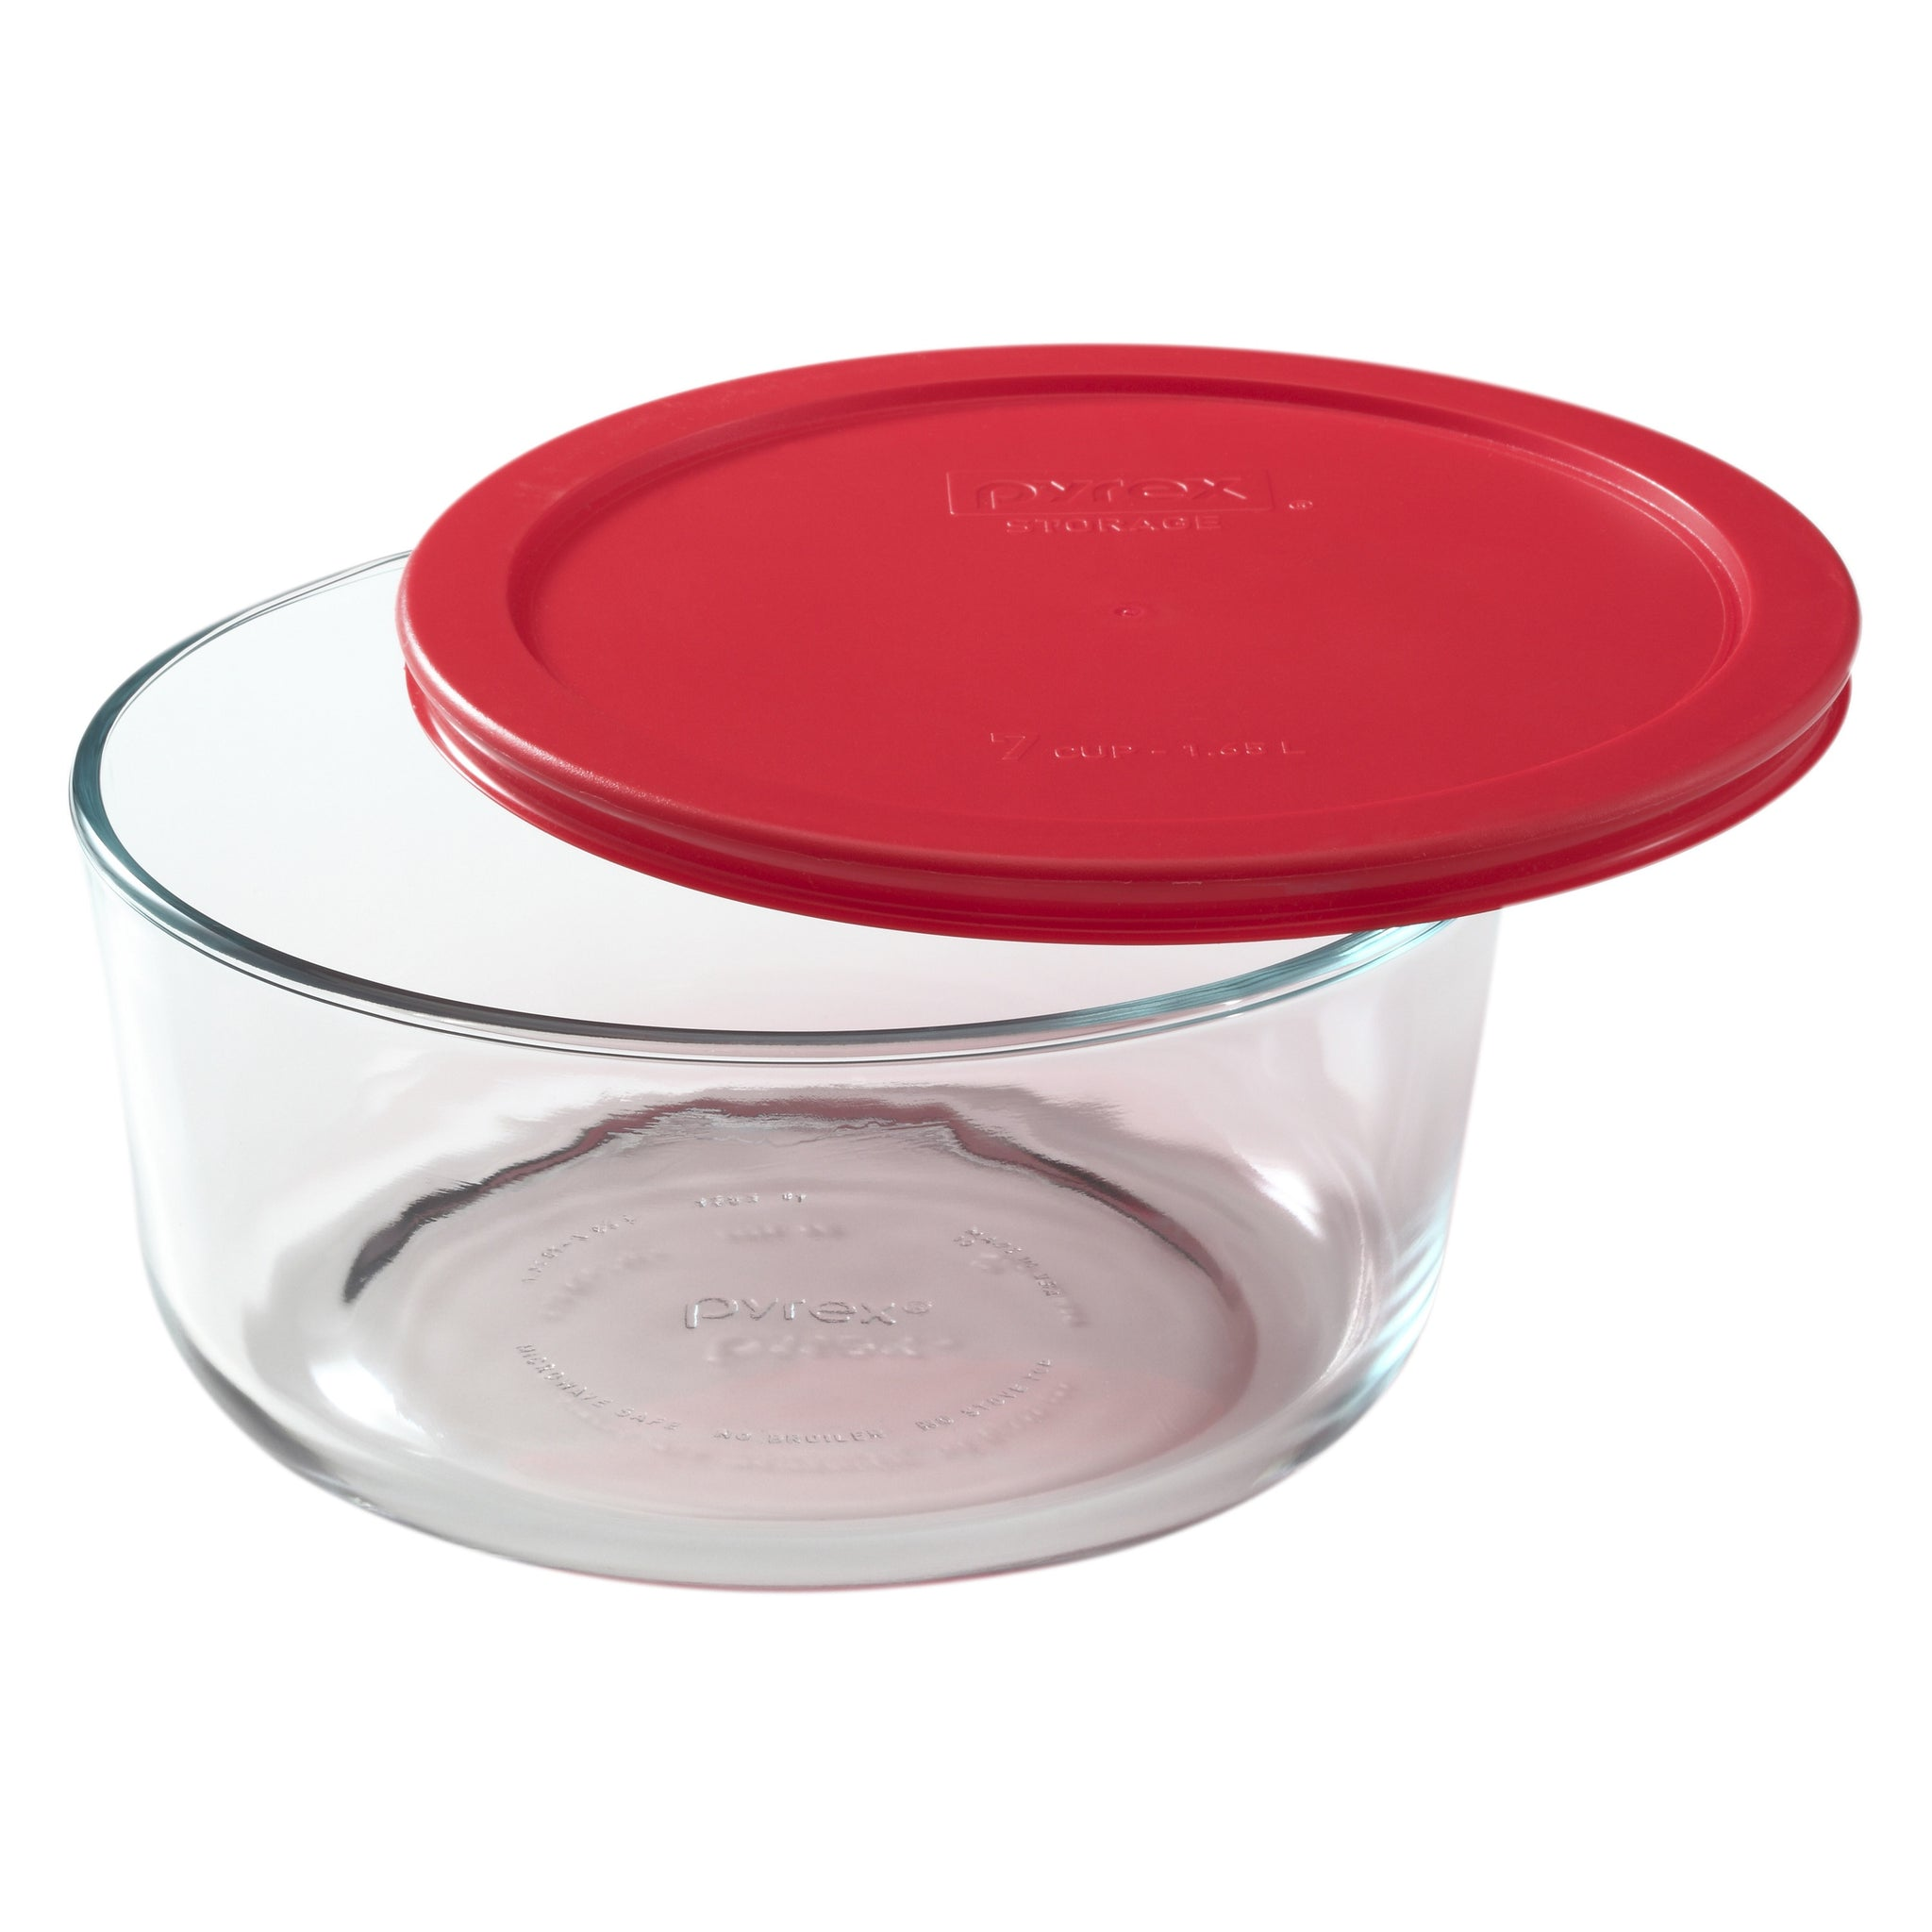 Pyrex Simply Storage Red Lid 7 Cup Round-1075429